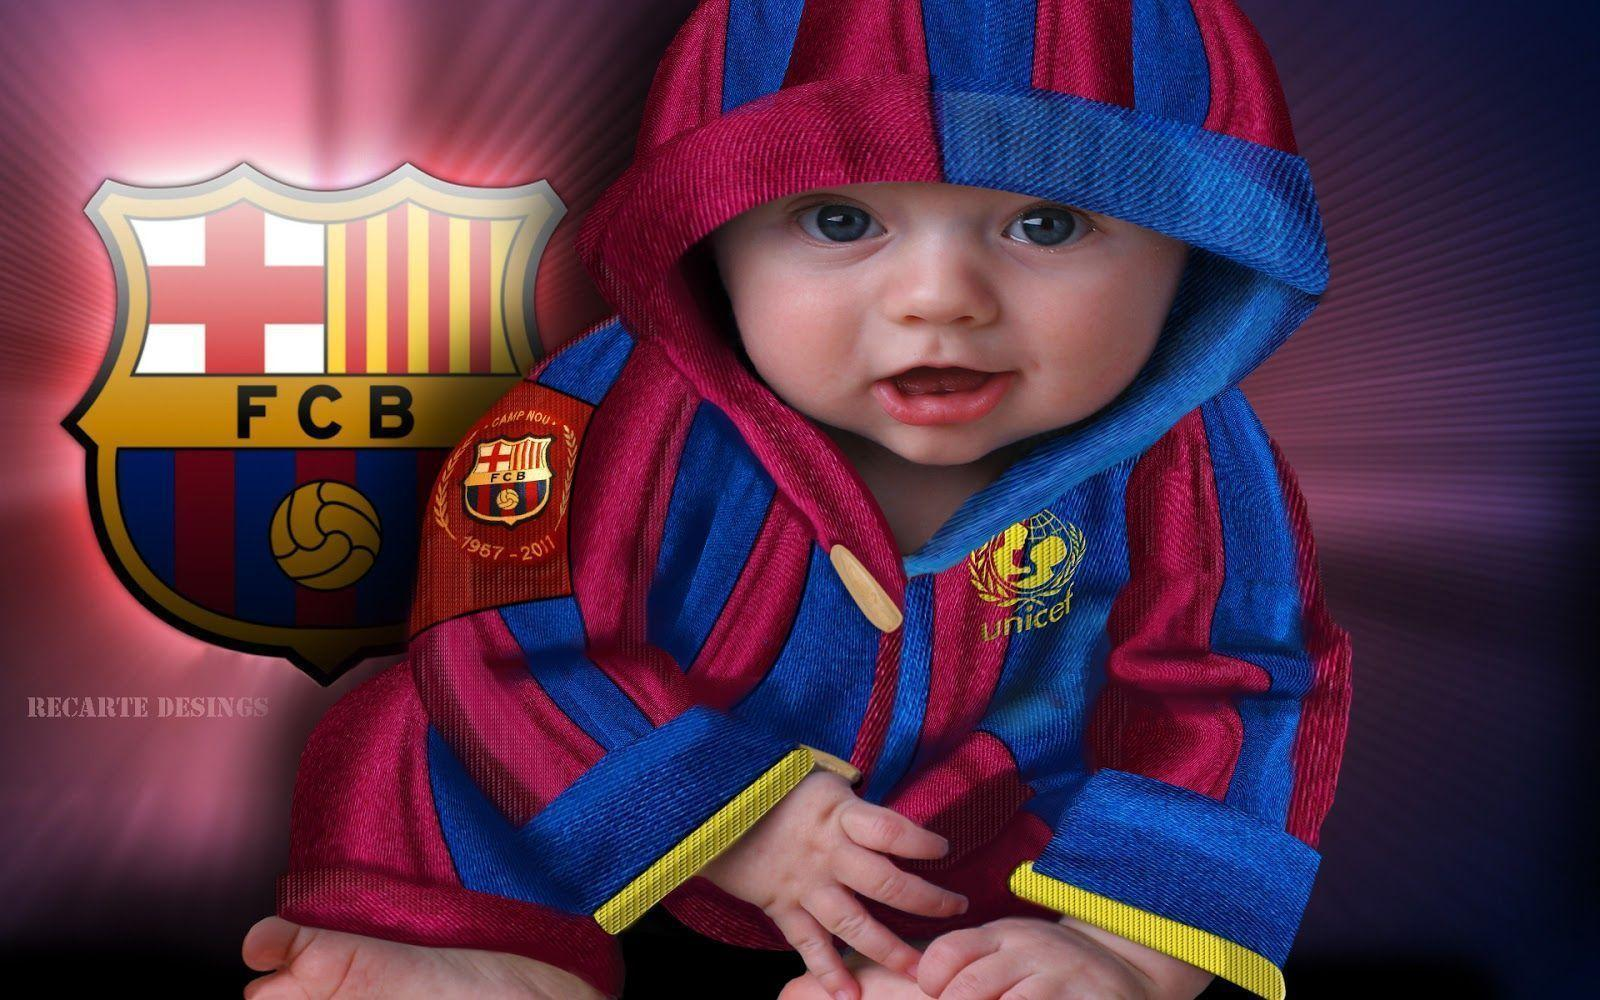 FC Barcelona Baby Wallpaper | Download High Quality Resolution ...